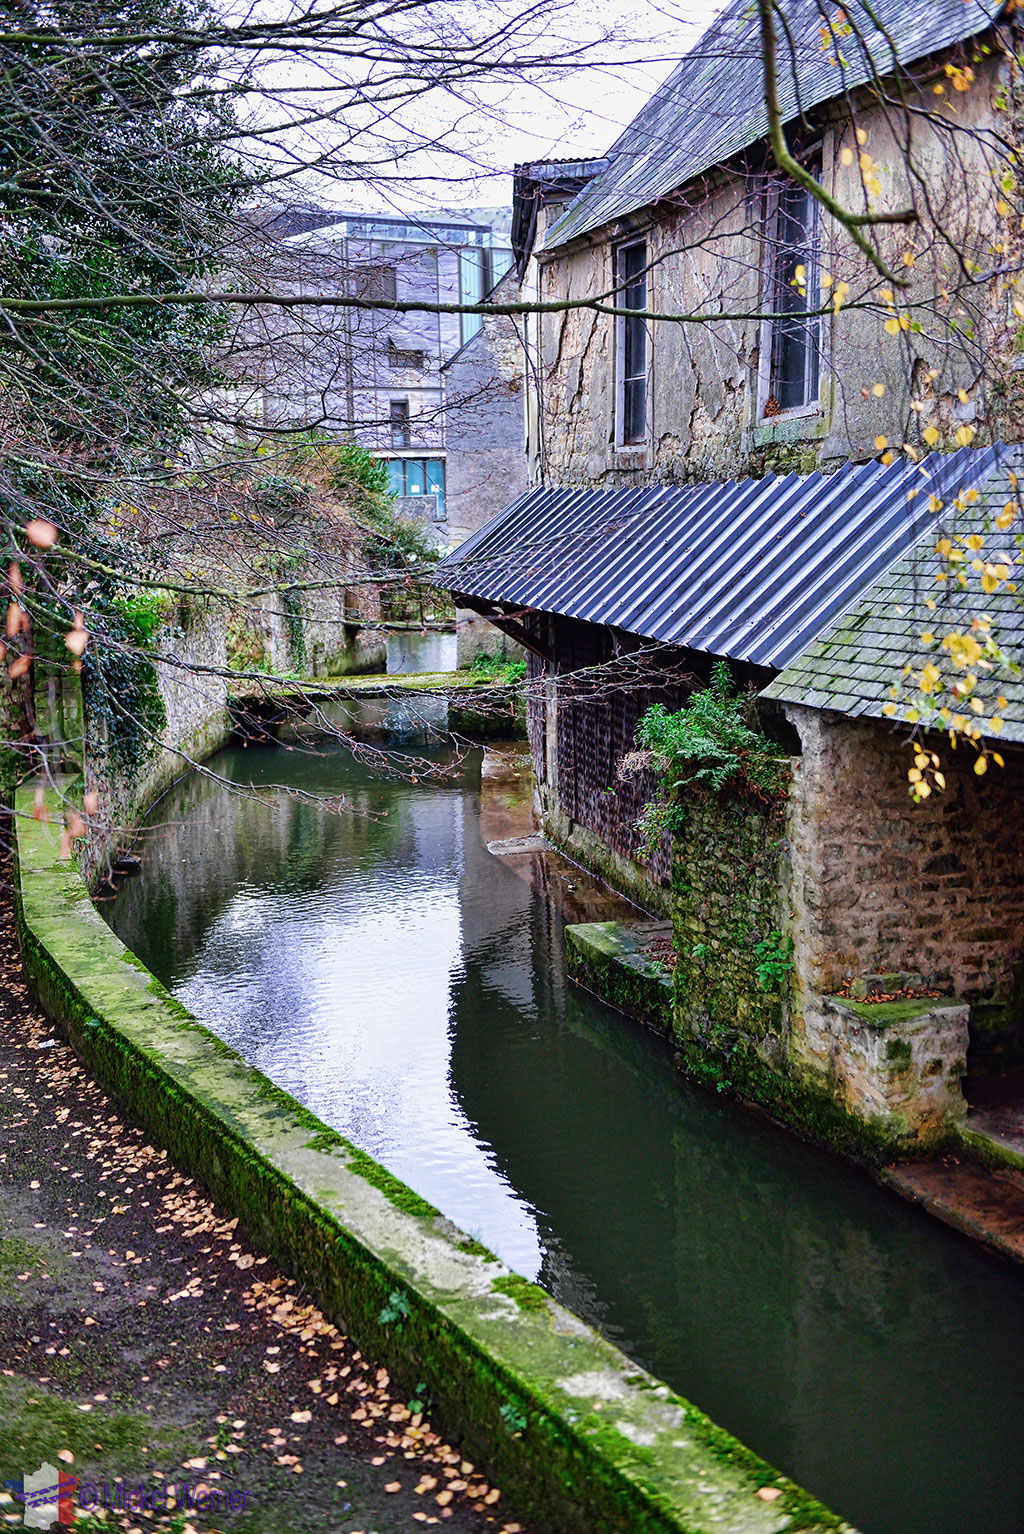 L'Aure river in Bayeux and its buildings